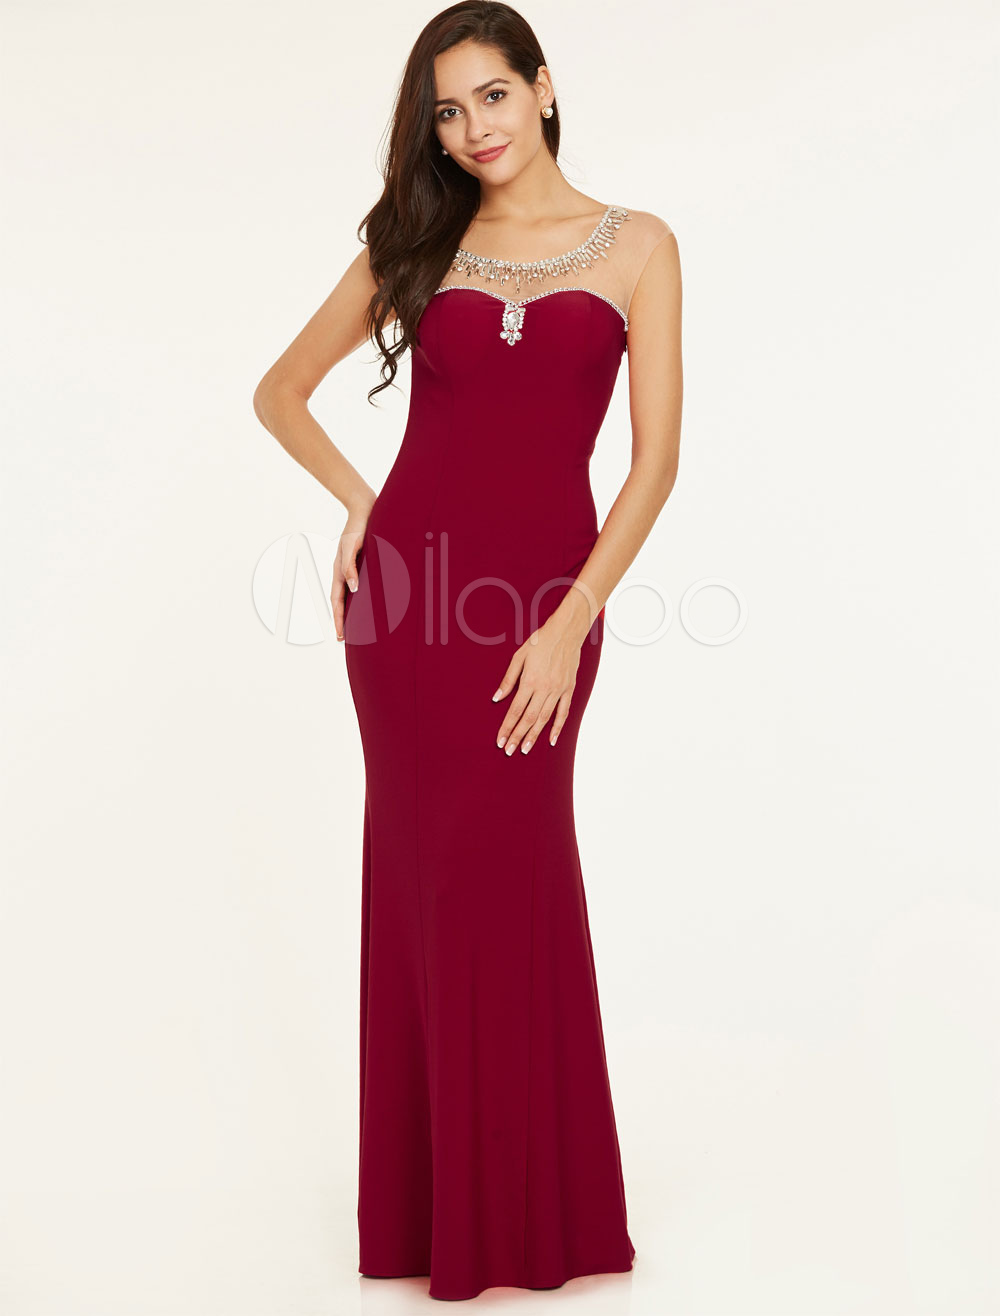 Prom Dresses Long Burgundy Mermaid Backless Evening Gowns Illusion Beading Jewel Neck Floor Length Formal Dress